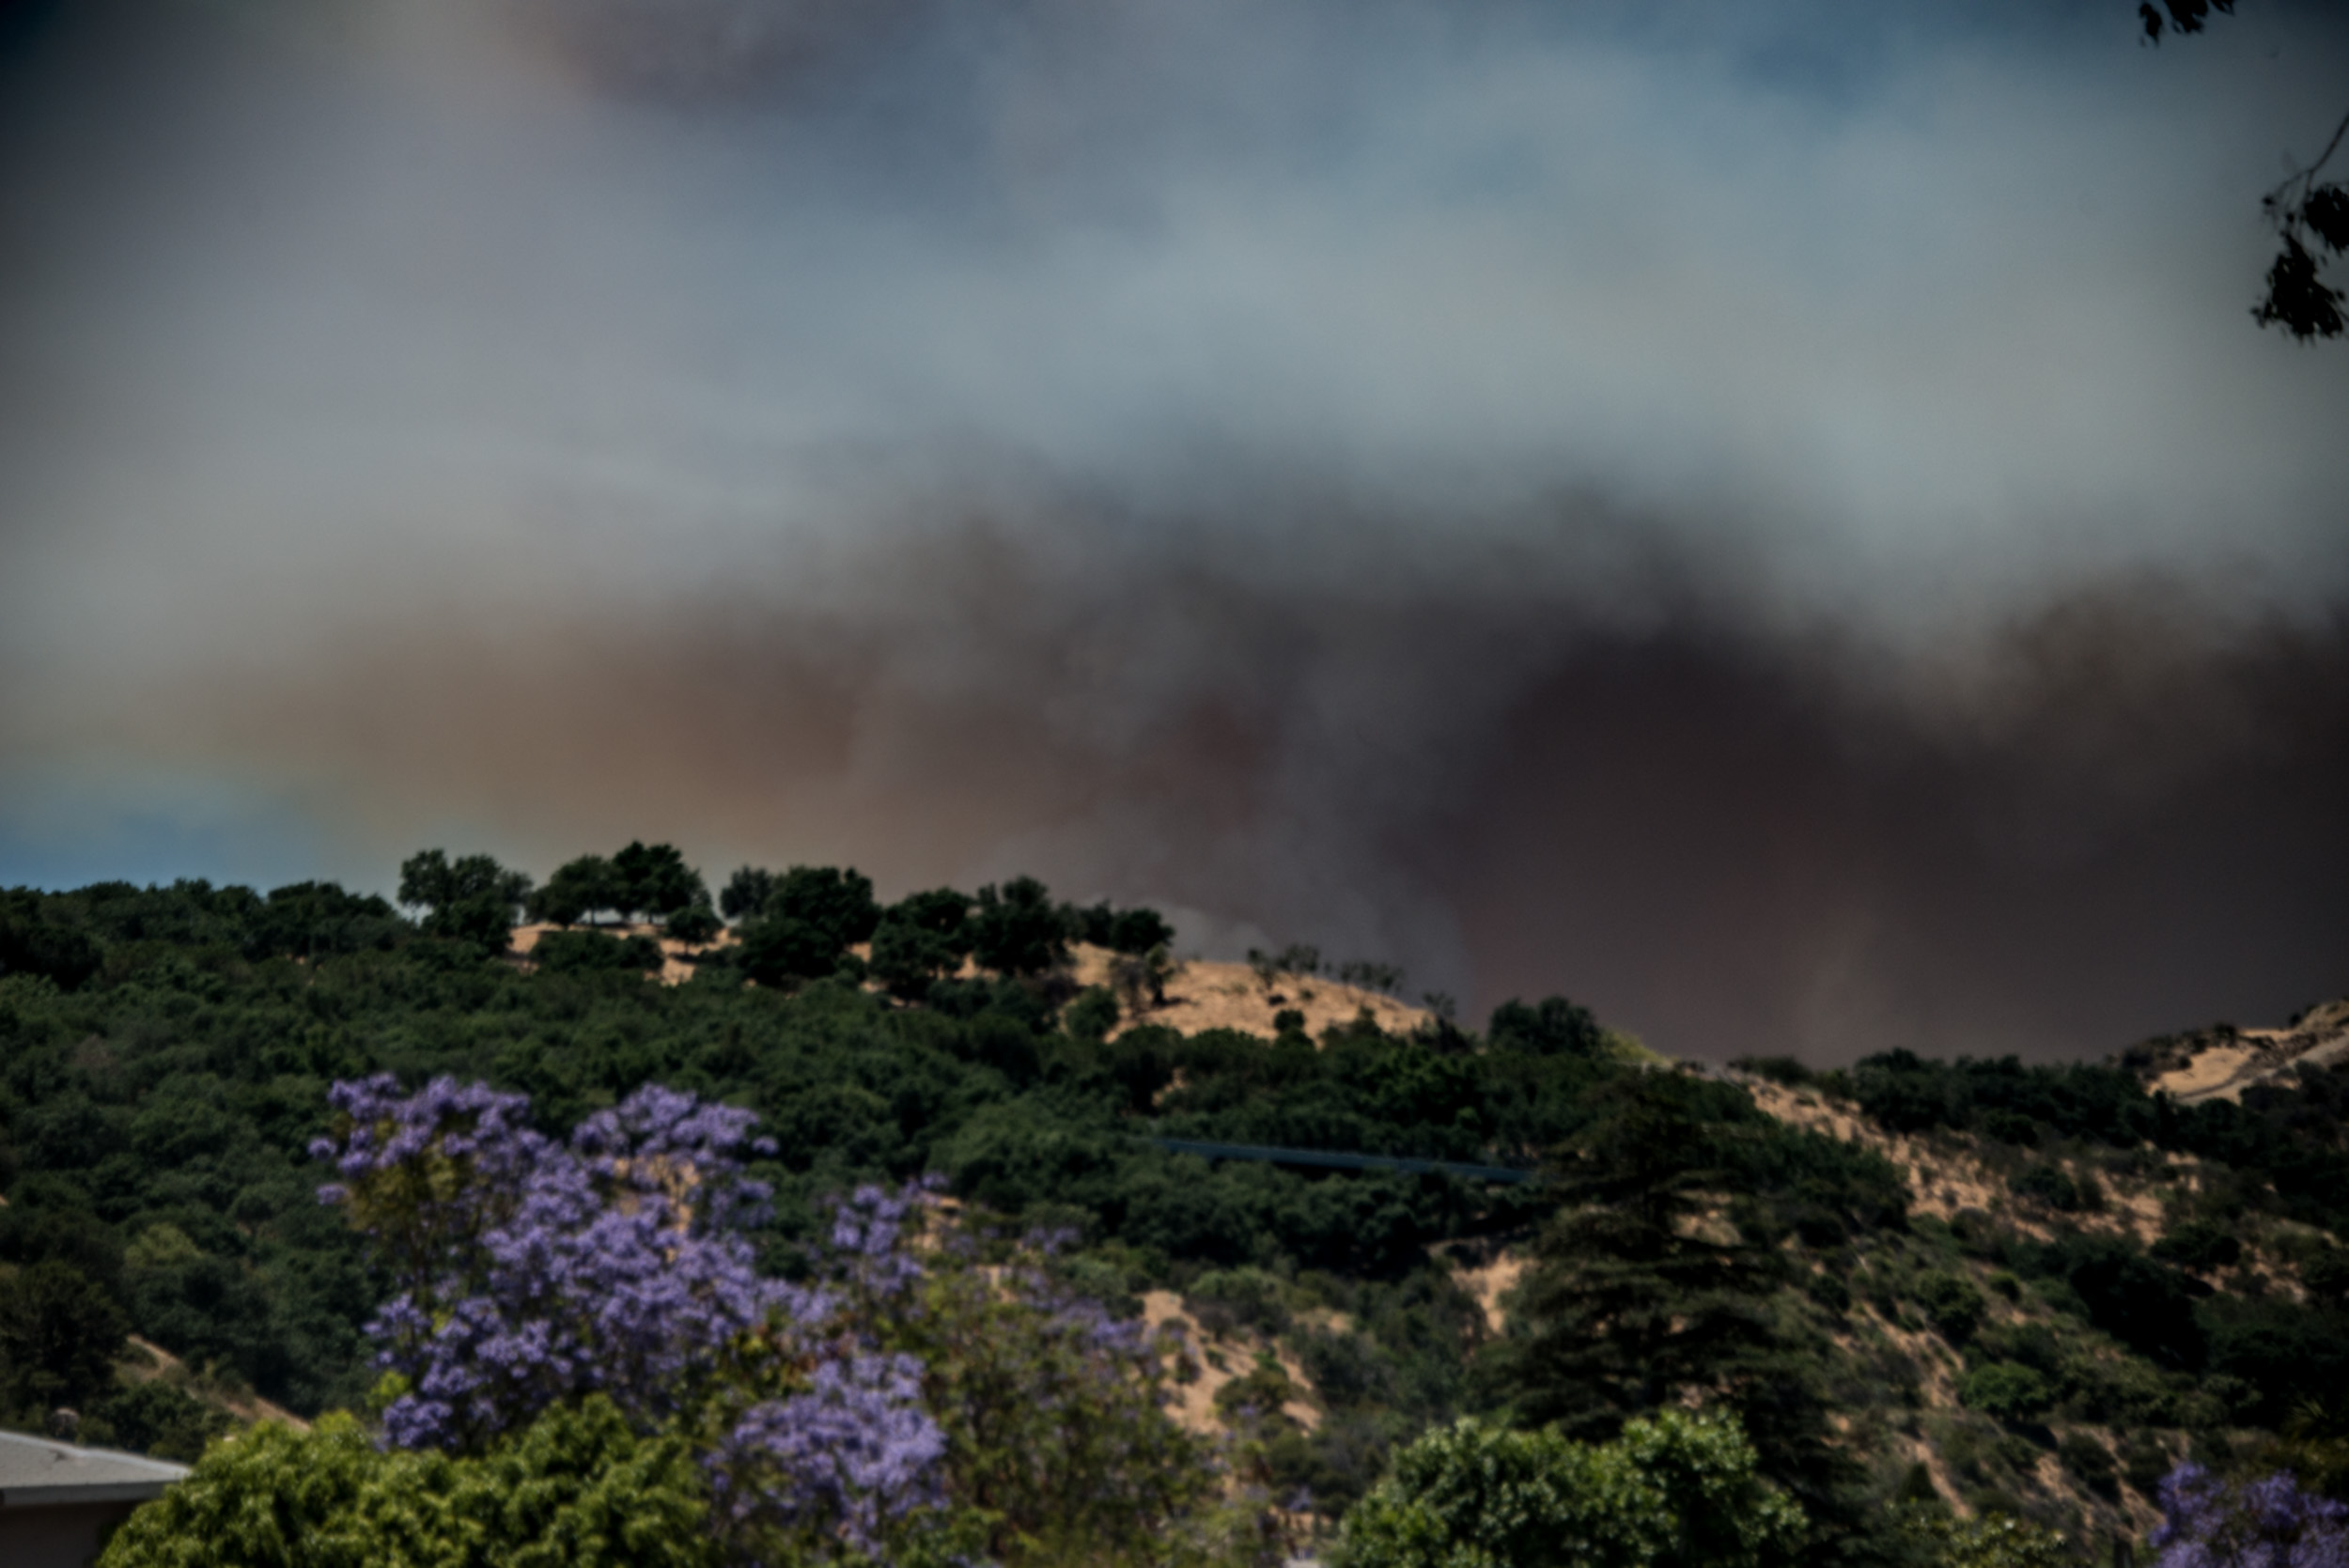 Getty Fire Smoke and Jacaranda Tree © Robert Welkie 2017